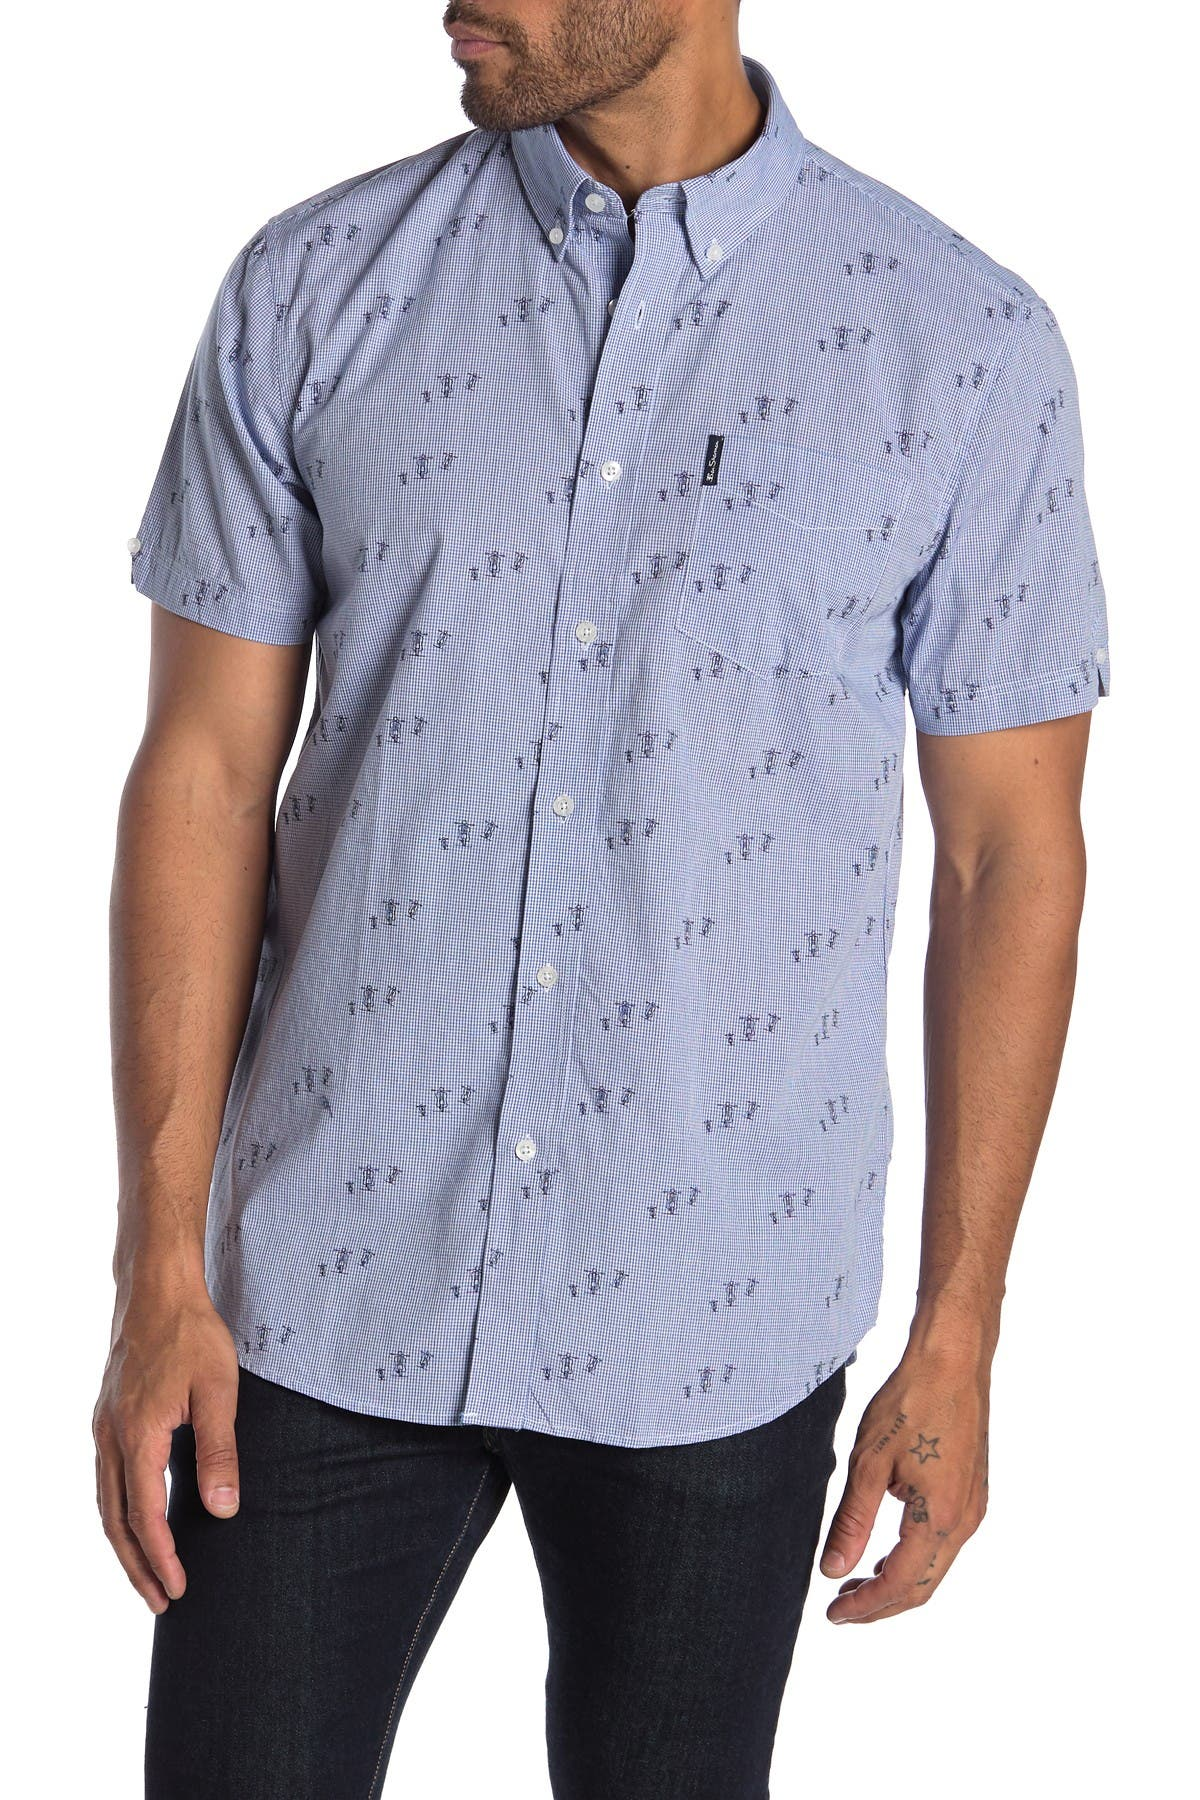 Image of Ben Sherman Scooter Print Short Sleeve Union Fit Shirt